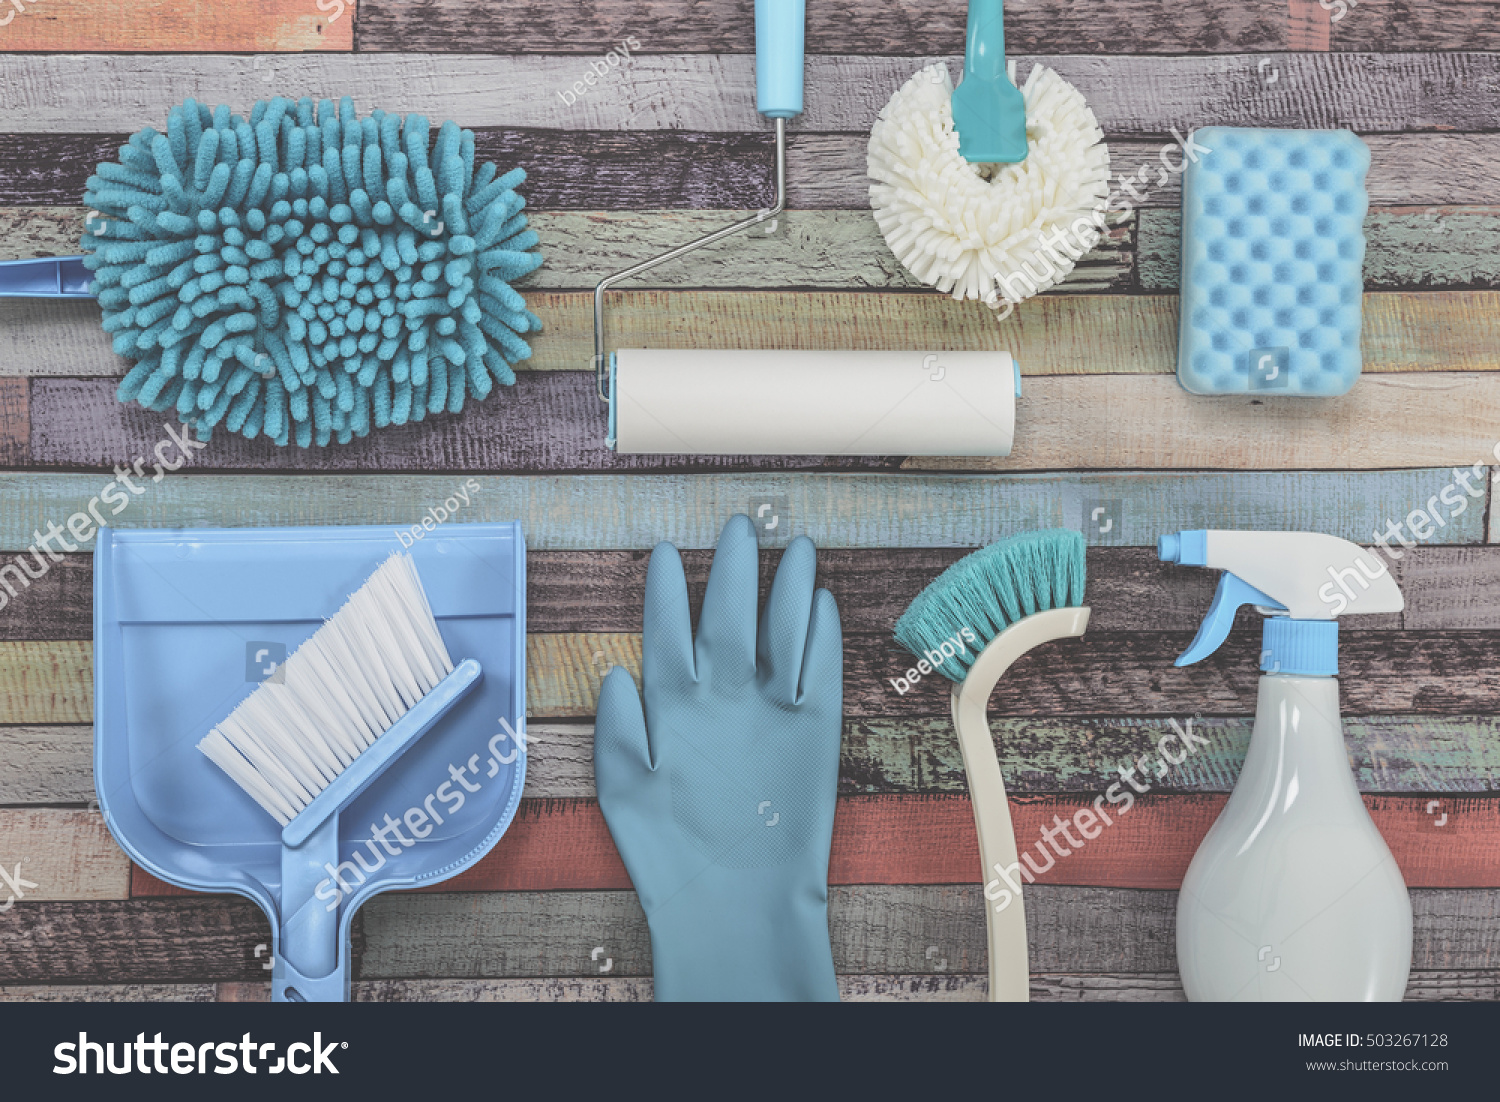 Cleaning Tool Woodgrain Table Stock Photo 503267128 Shutterstock